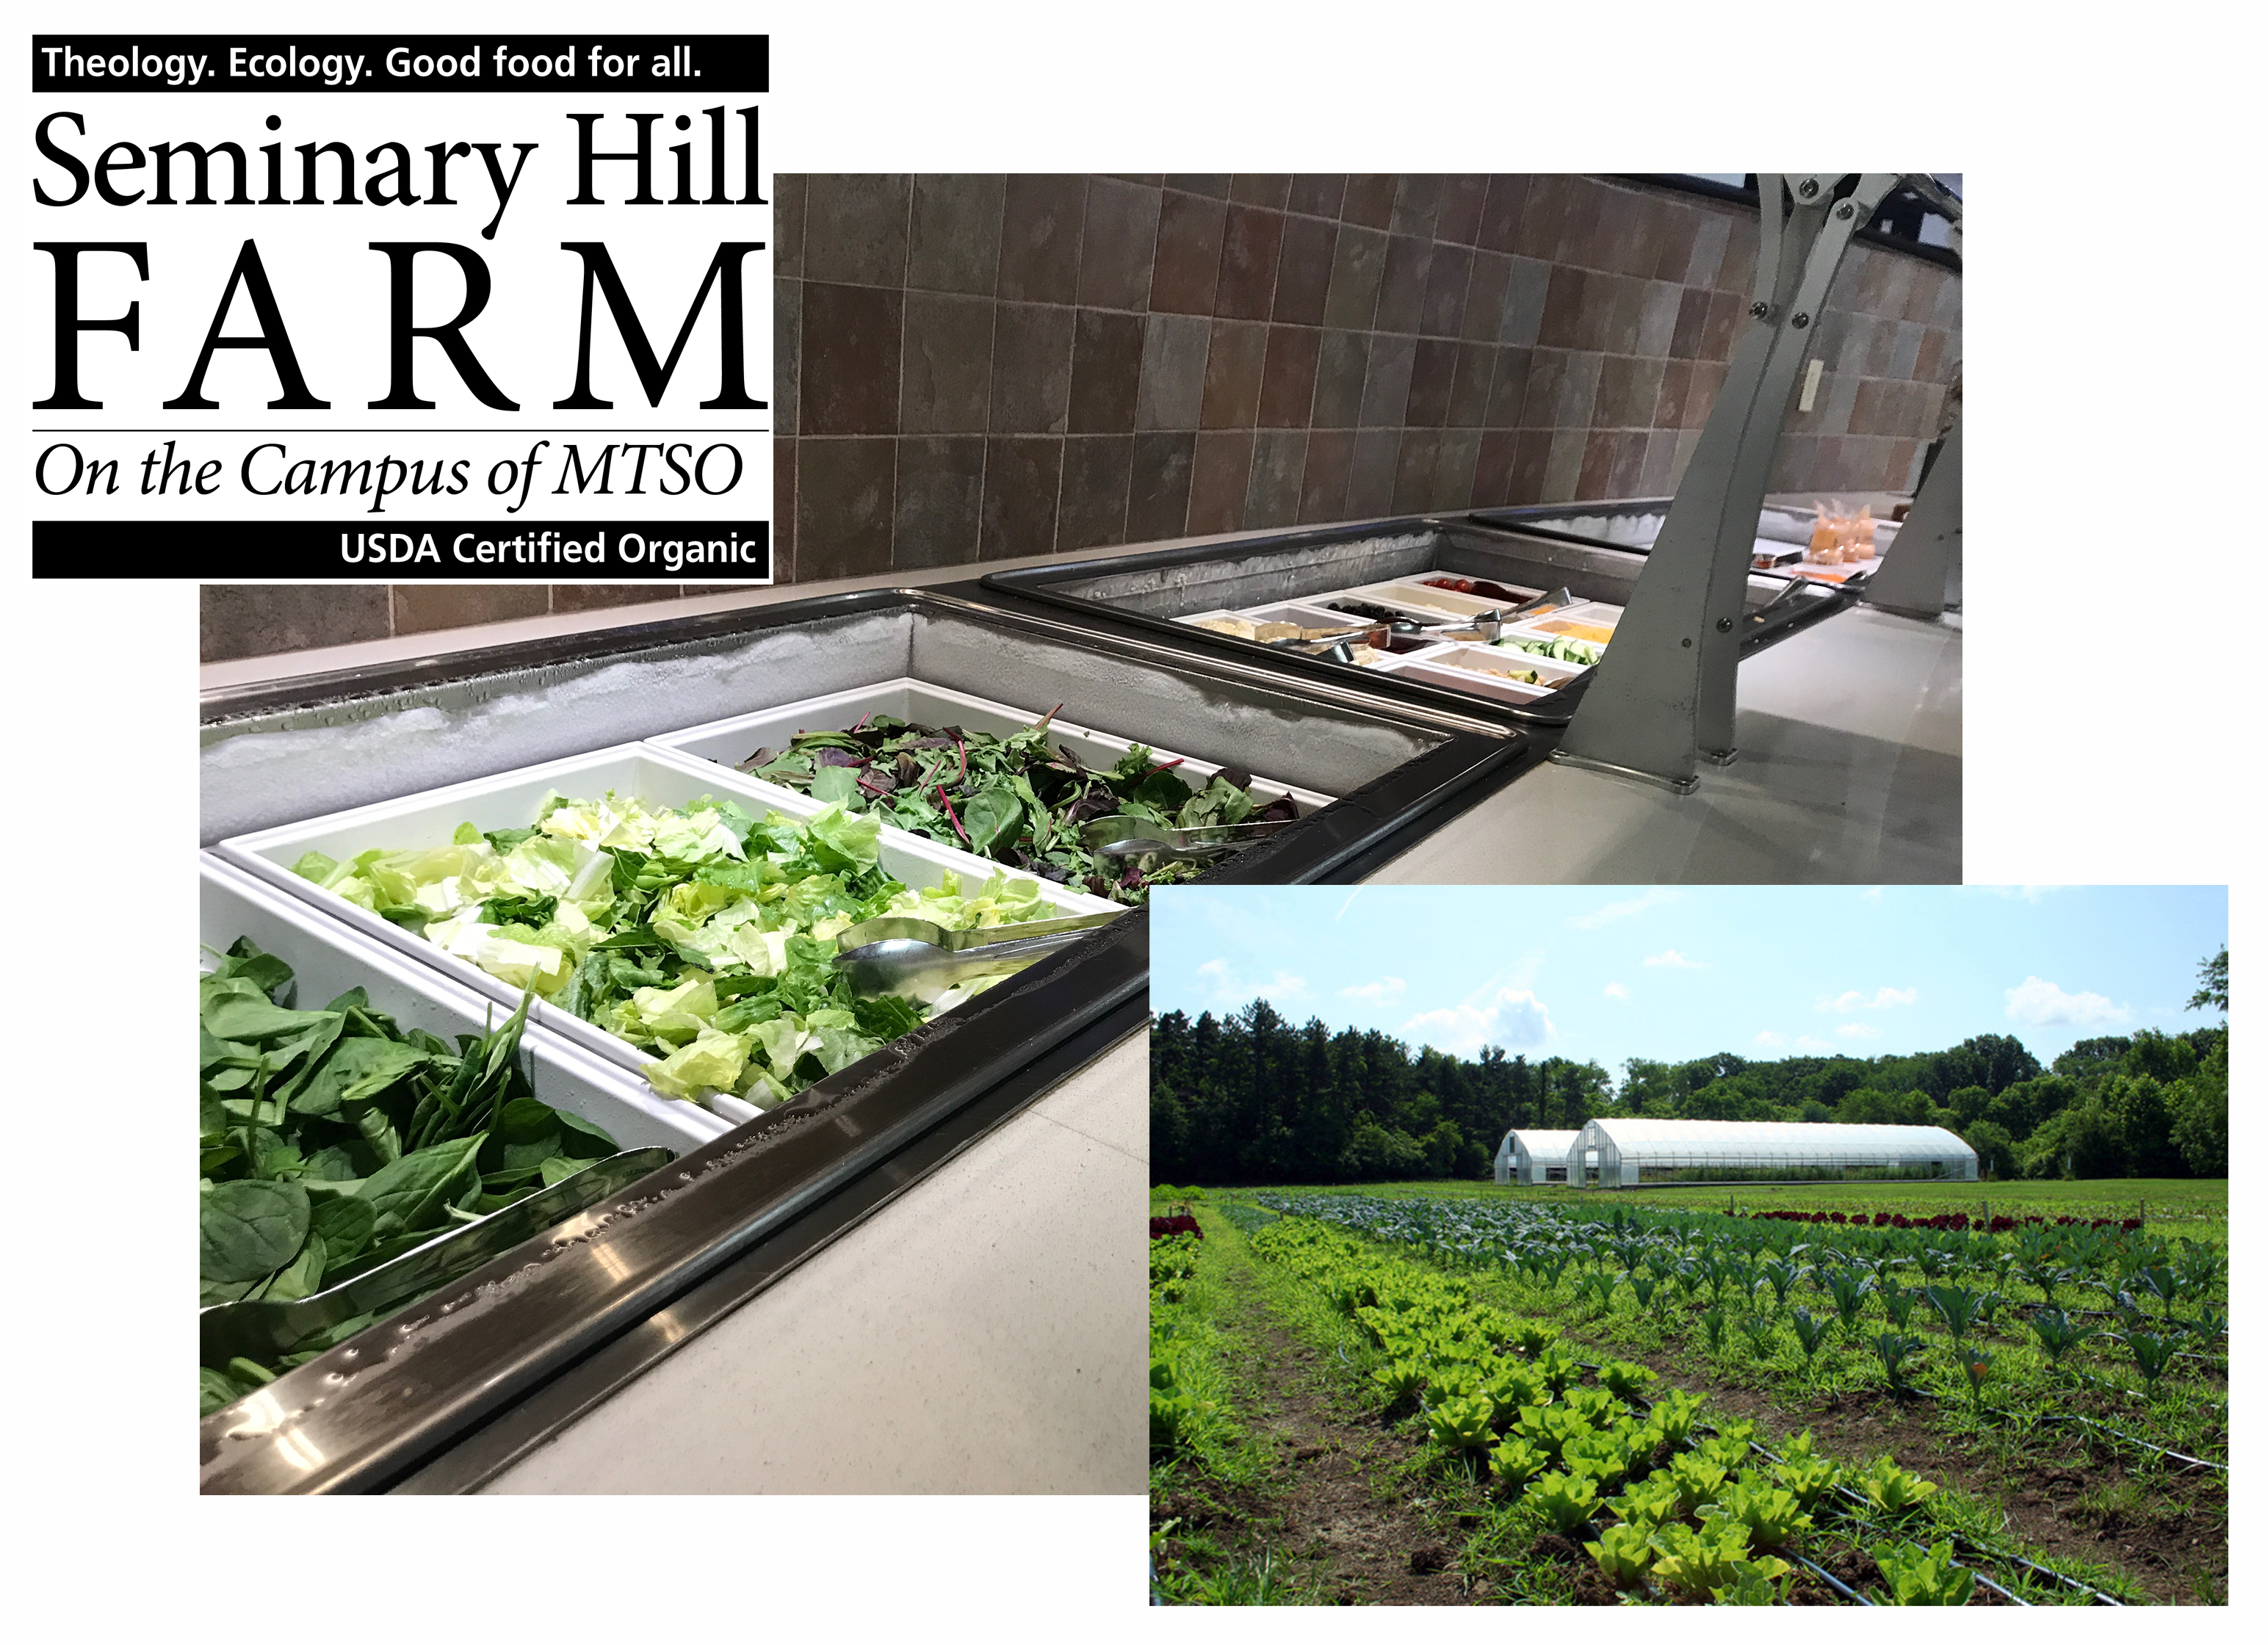 OWU's New Hyper-Local Salad Bar @ Smith Dining Hall